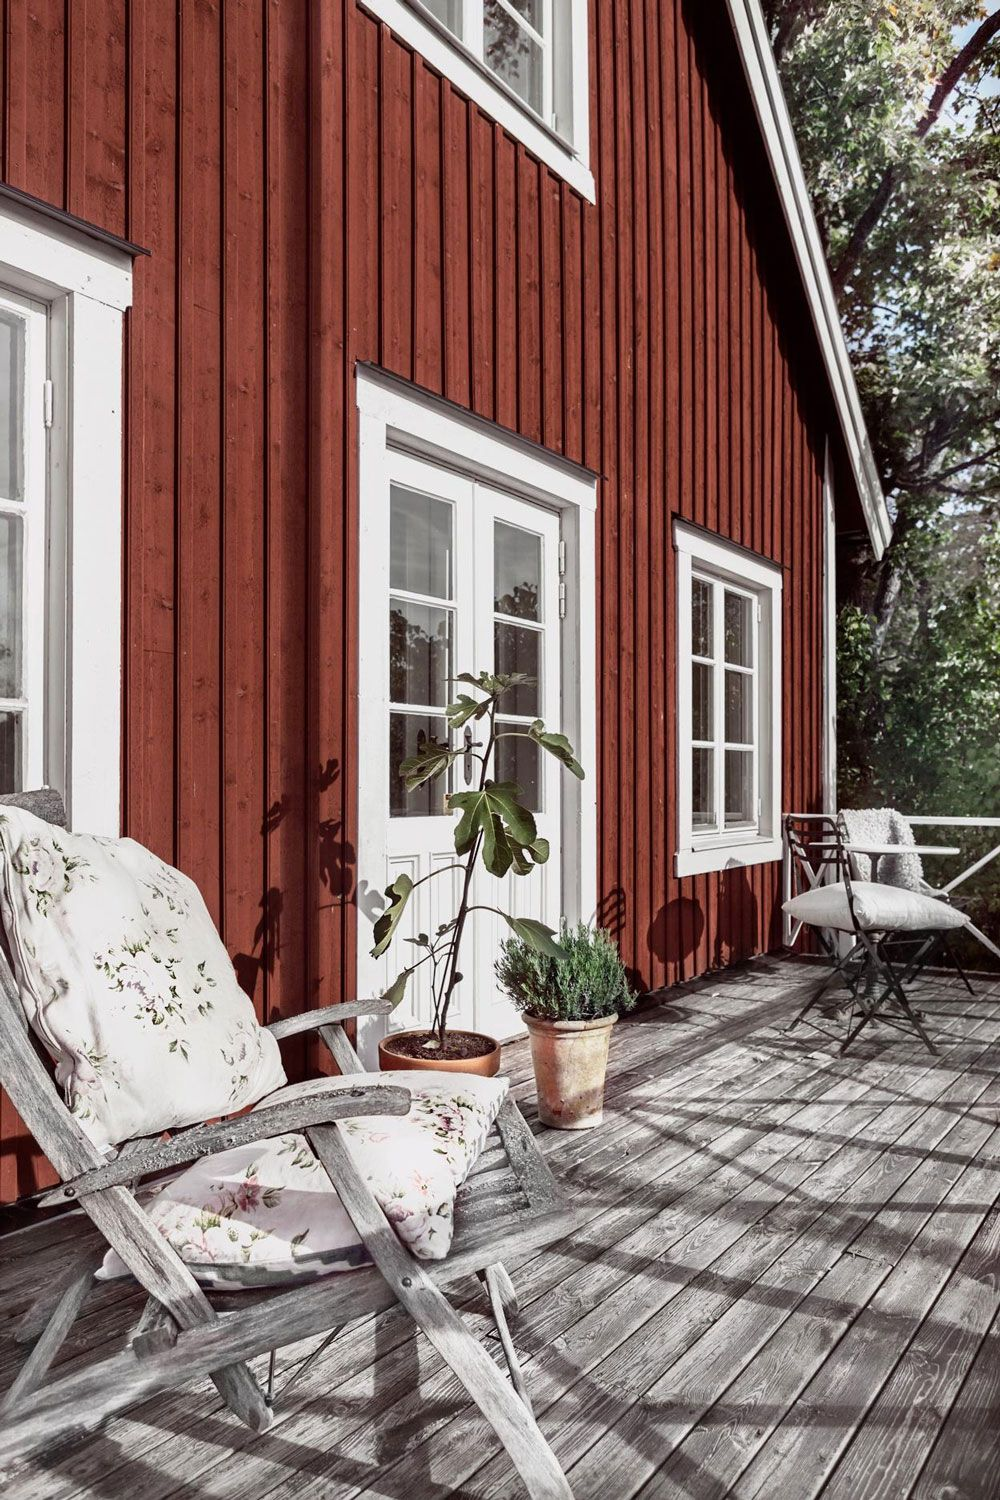 Dreaming Of This Serene Traditional Swedish Cabin Countryside House Swedish Cottage Swedish House